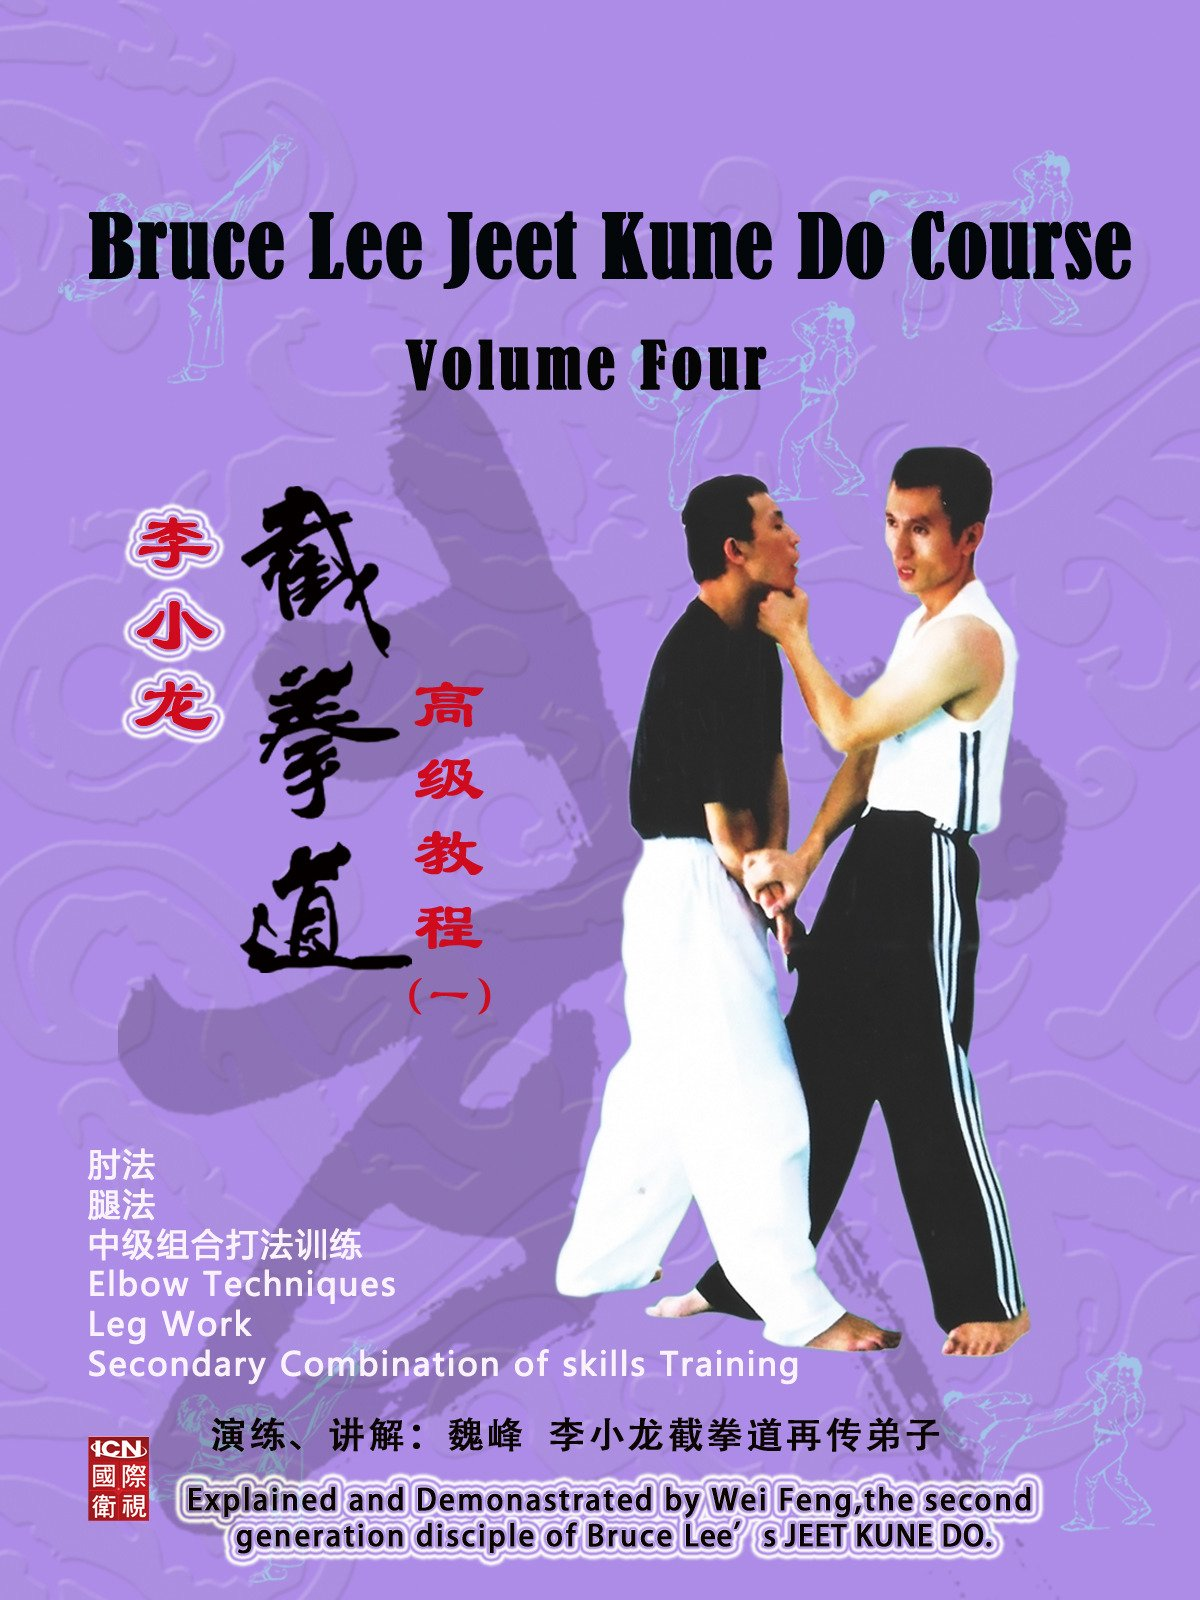 Bruce Lee Jeet Kune Do Course Volume Four